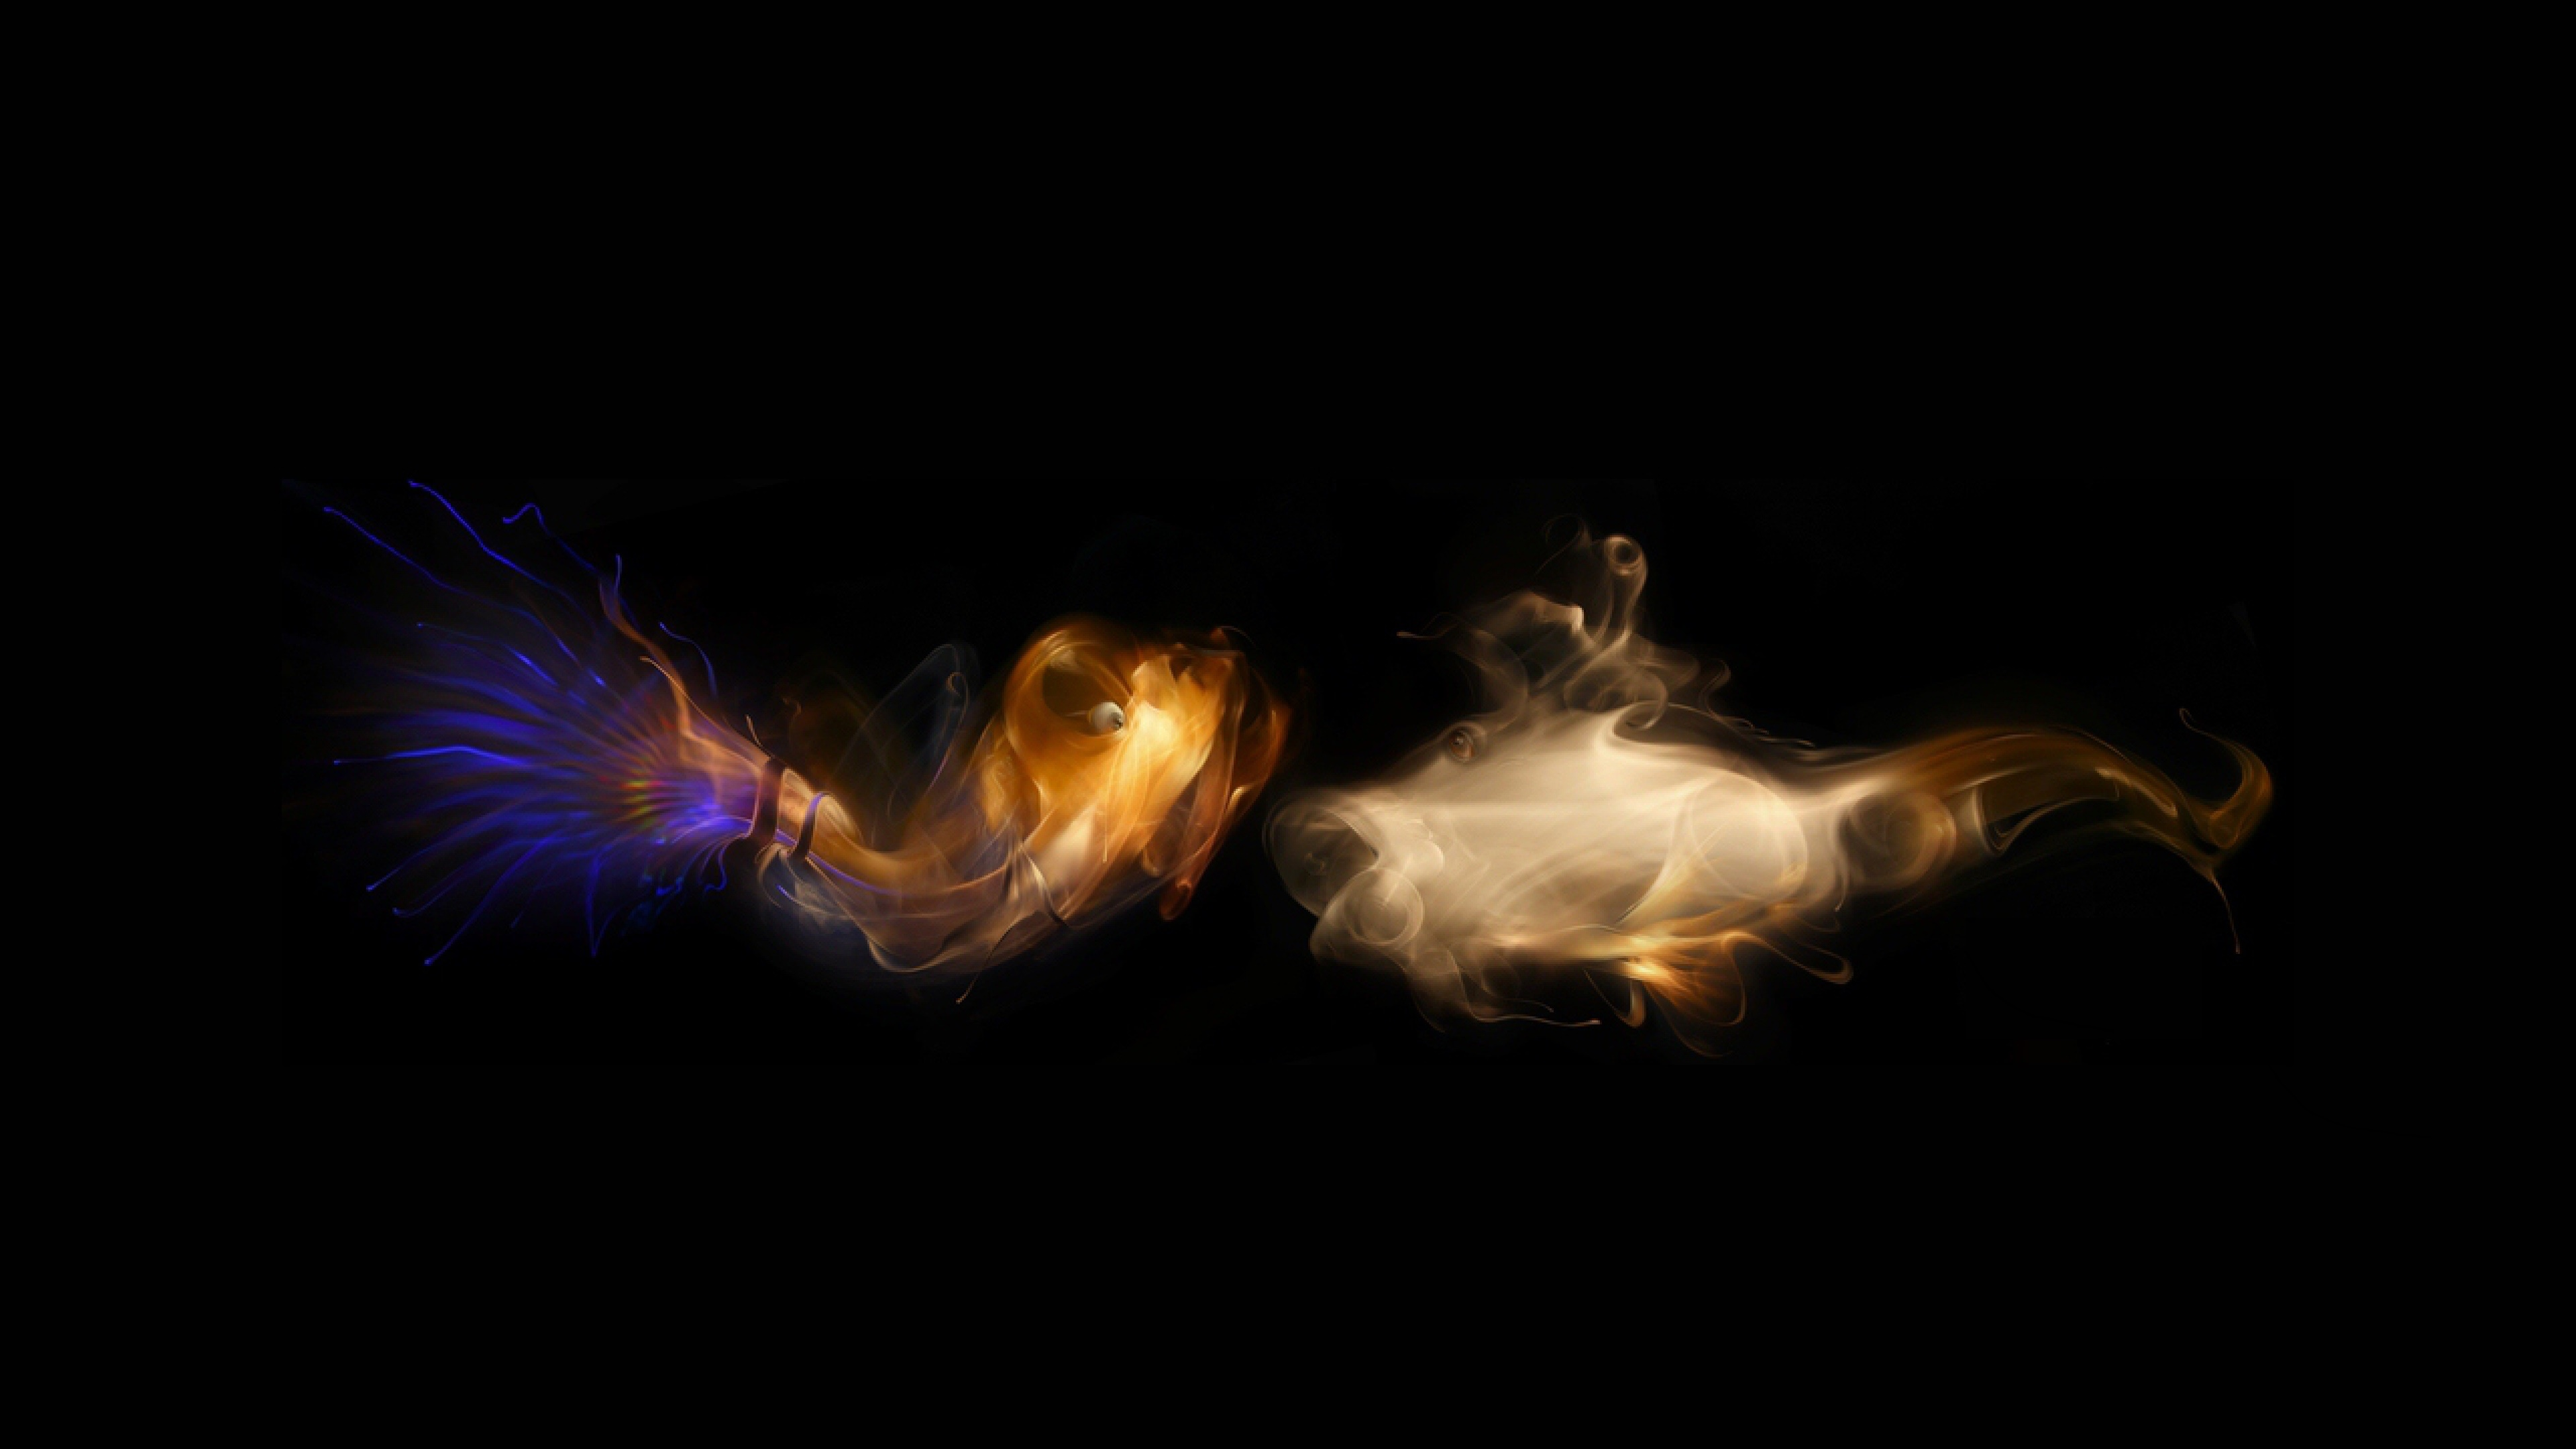 Smoke Backgrounds Download 3840x2160